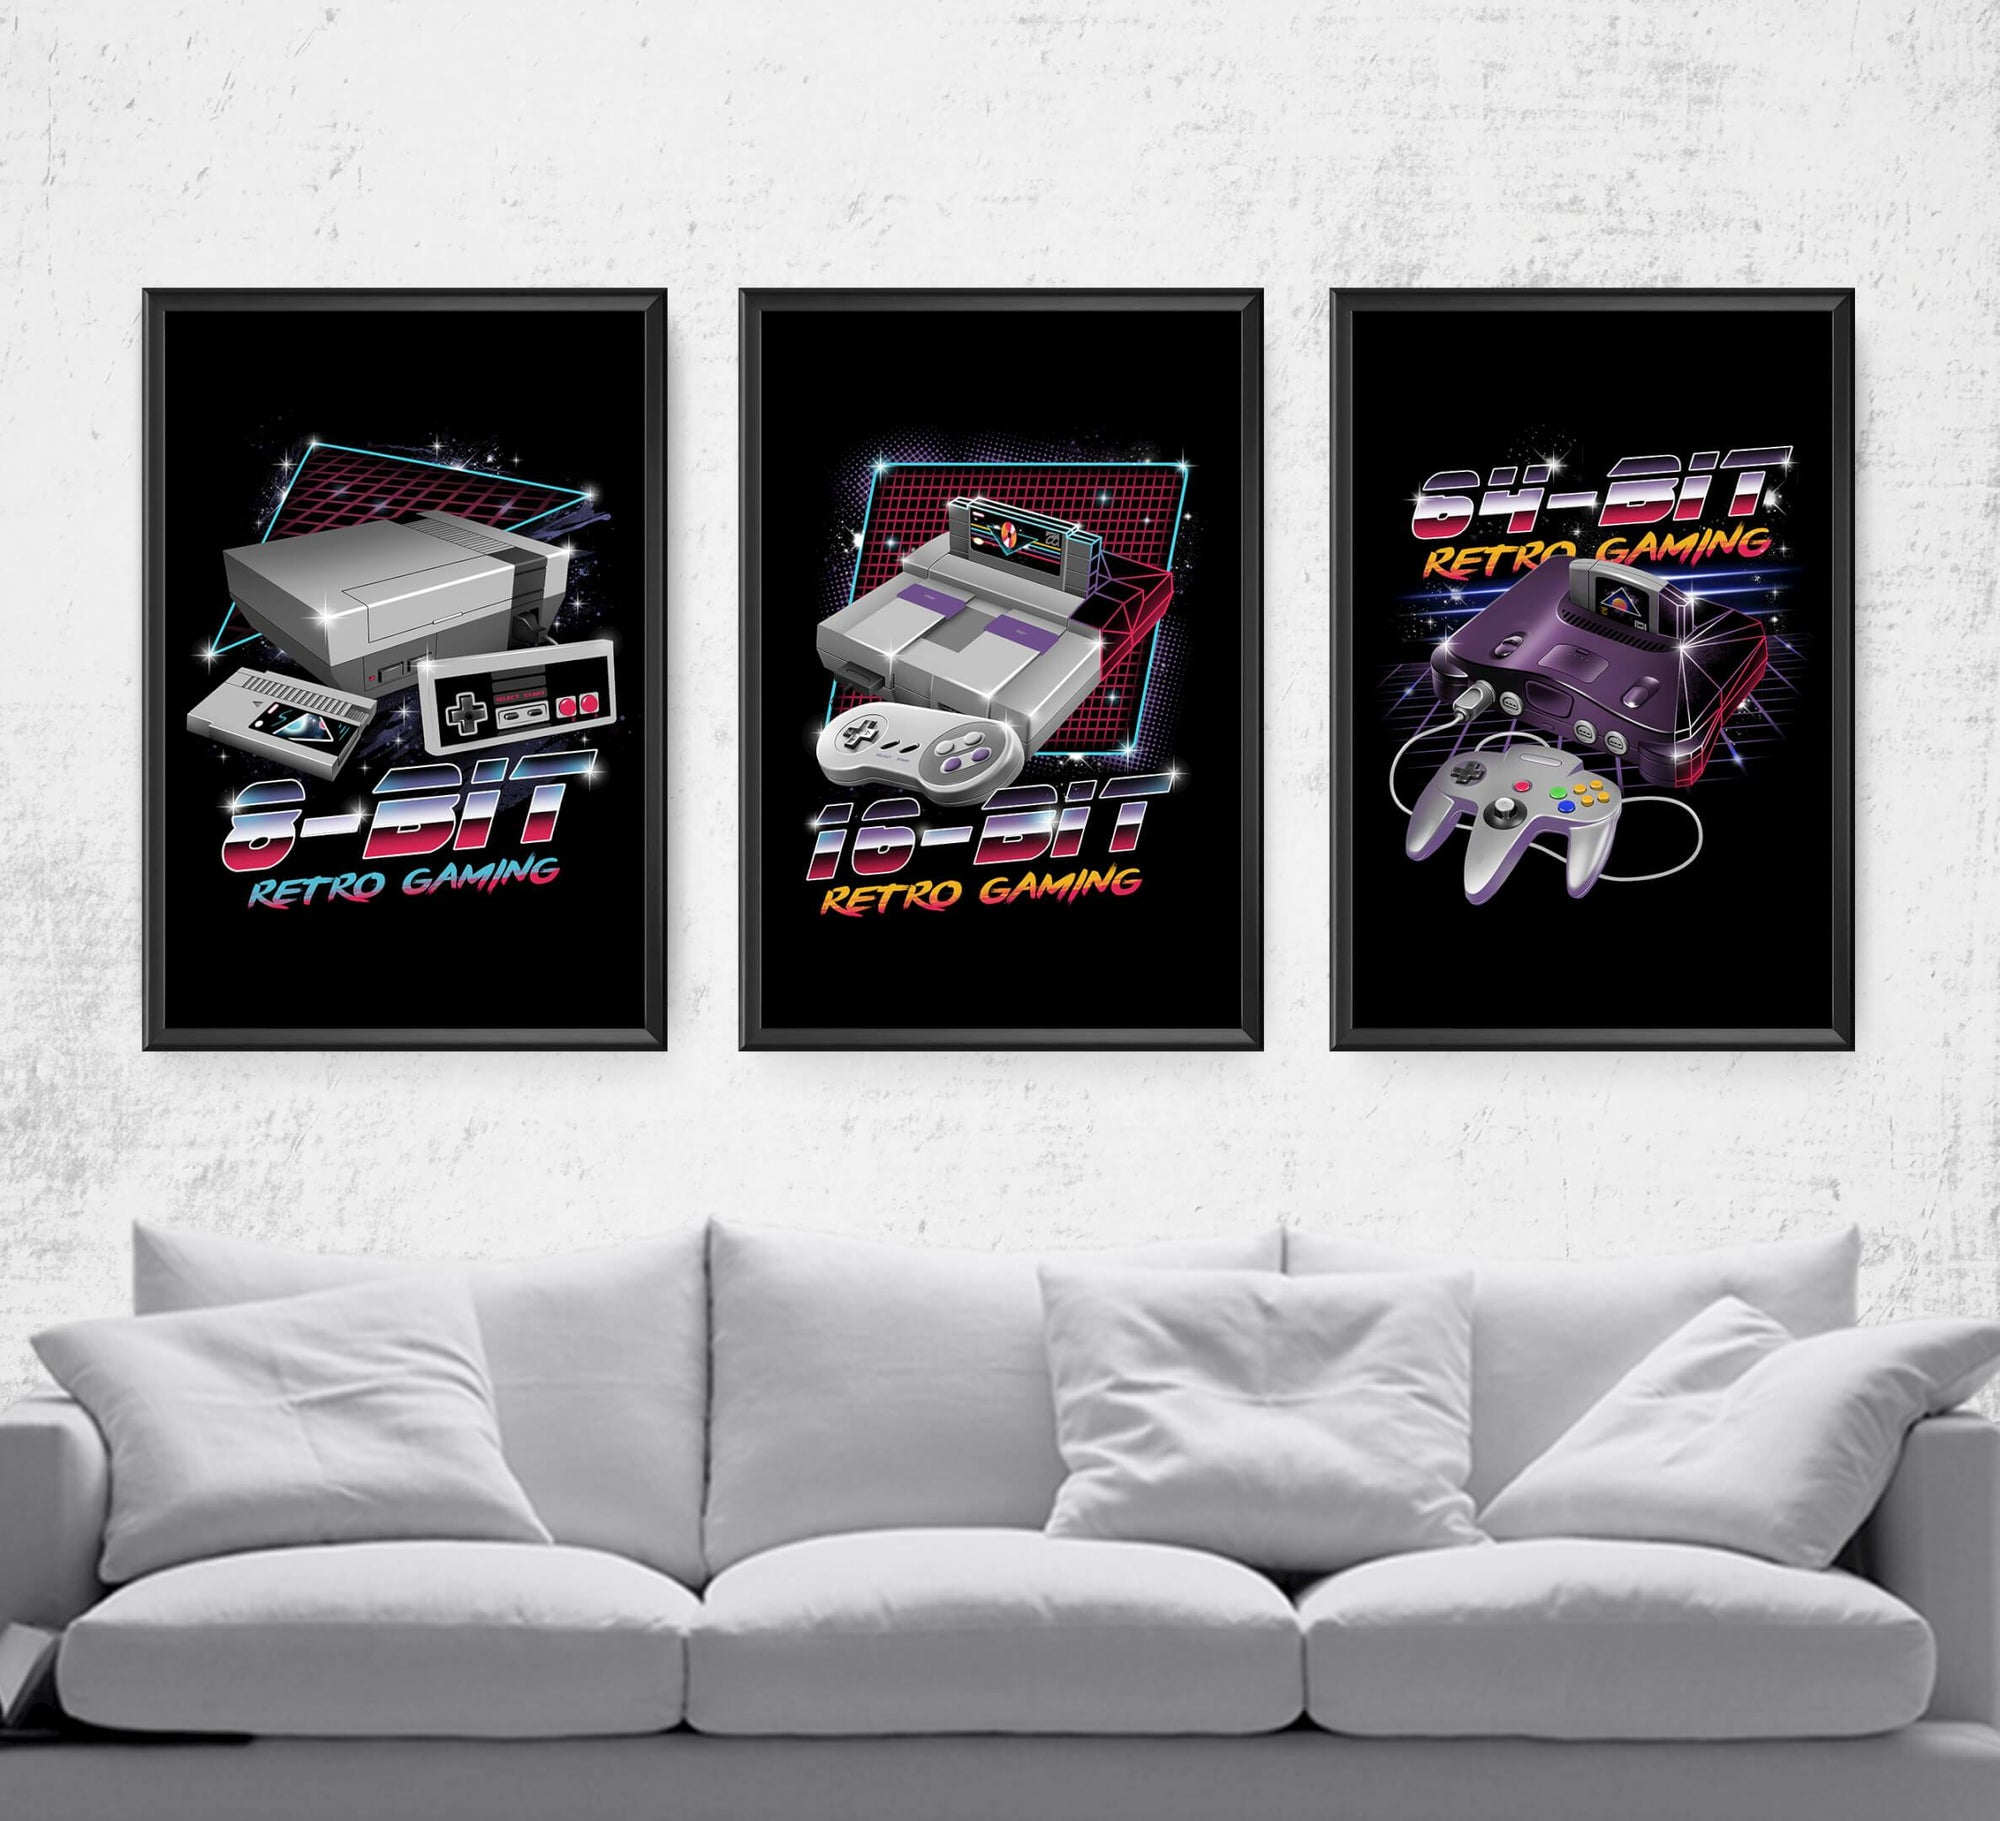 Retro Gaming Series Posters by Vincent Trinidad - Pixel Empire